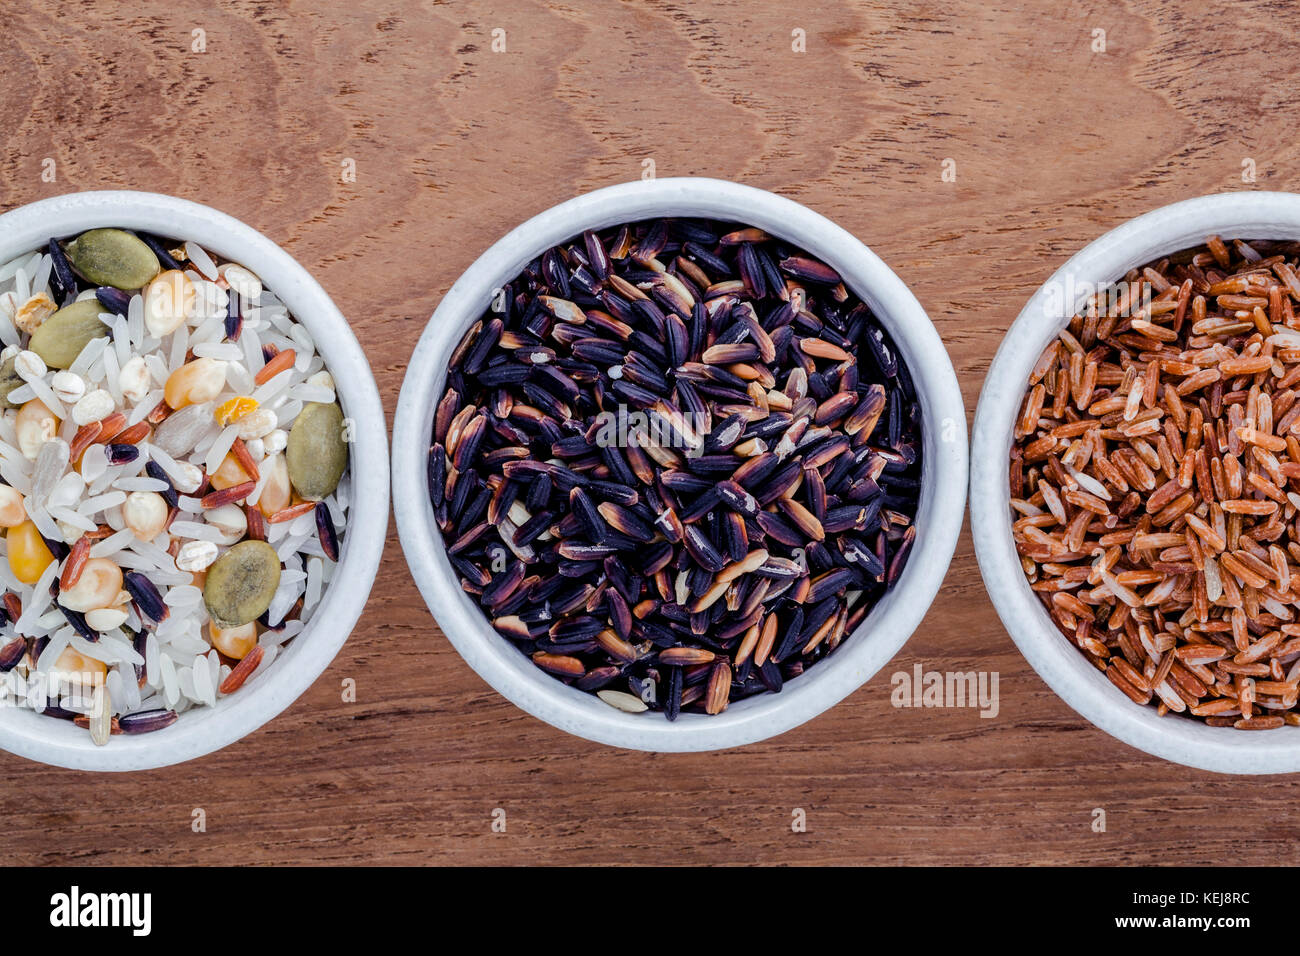 Assortment of traditional thai rice in ceramic bowl on wooden background. The Supper food high Fiber and vitamin - Stock Image